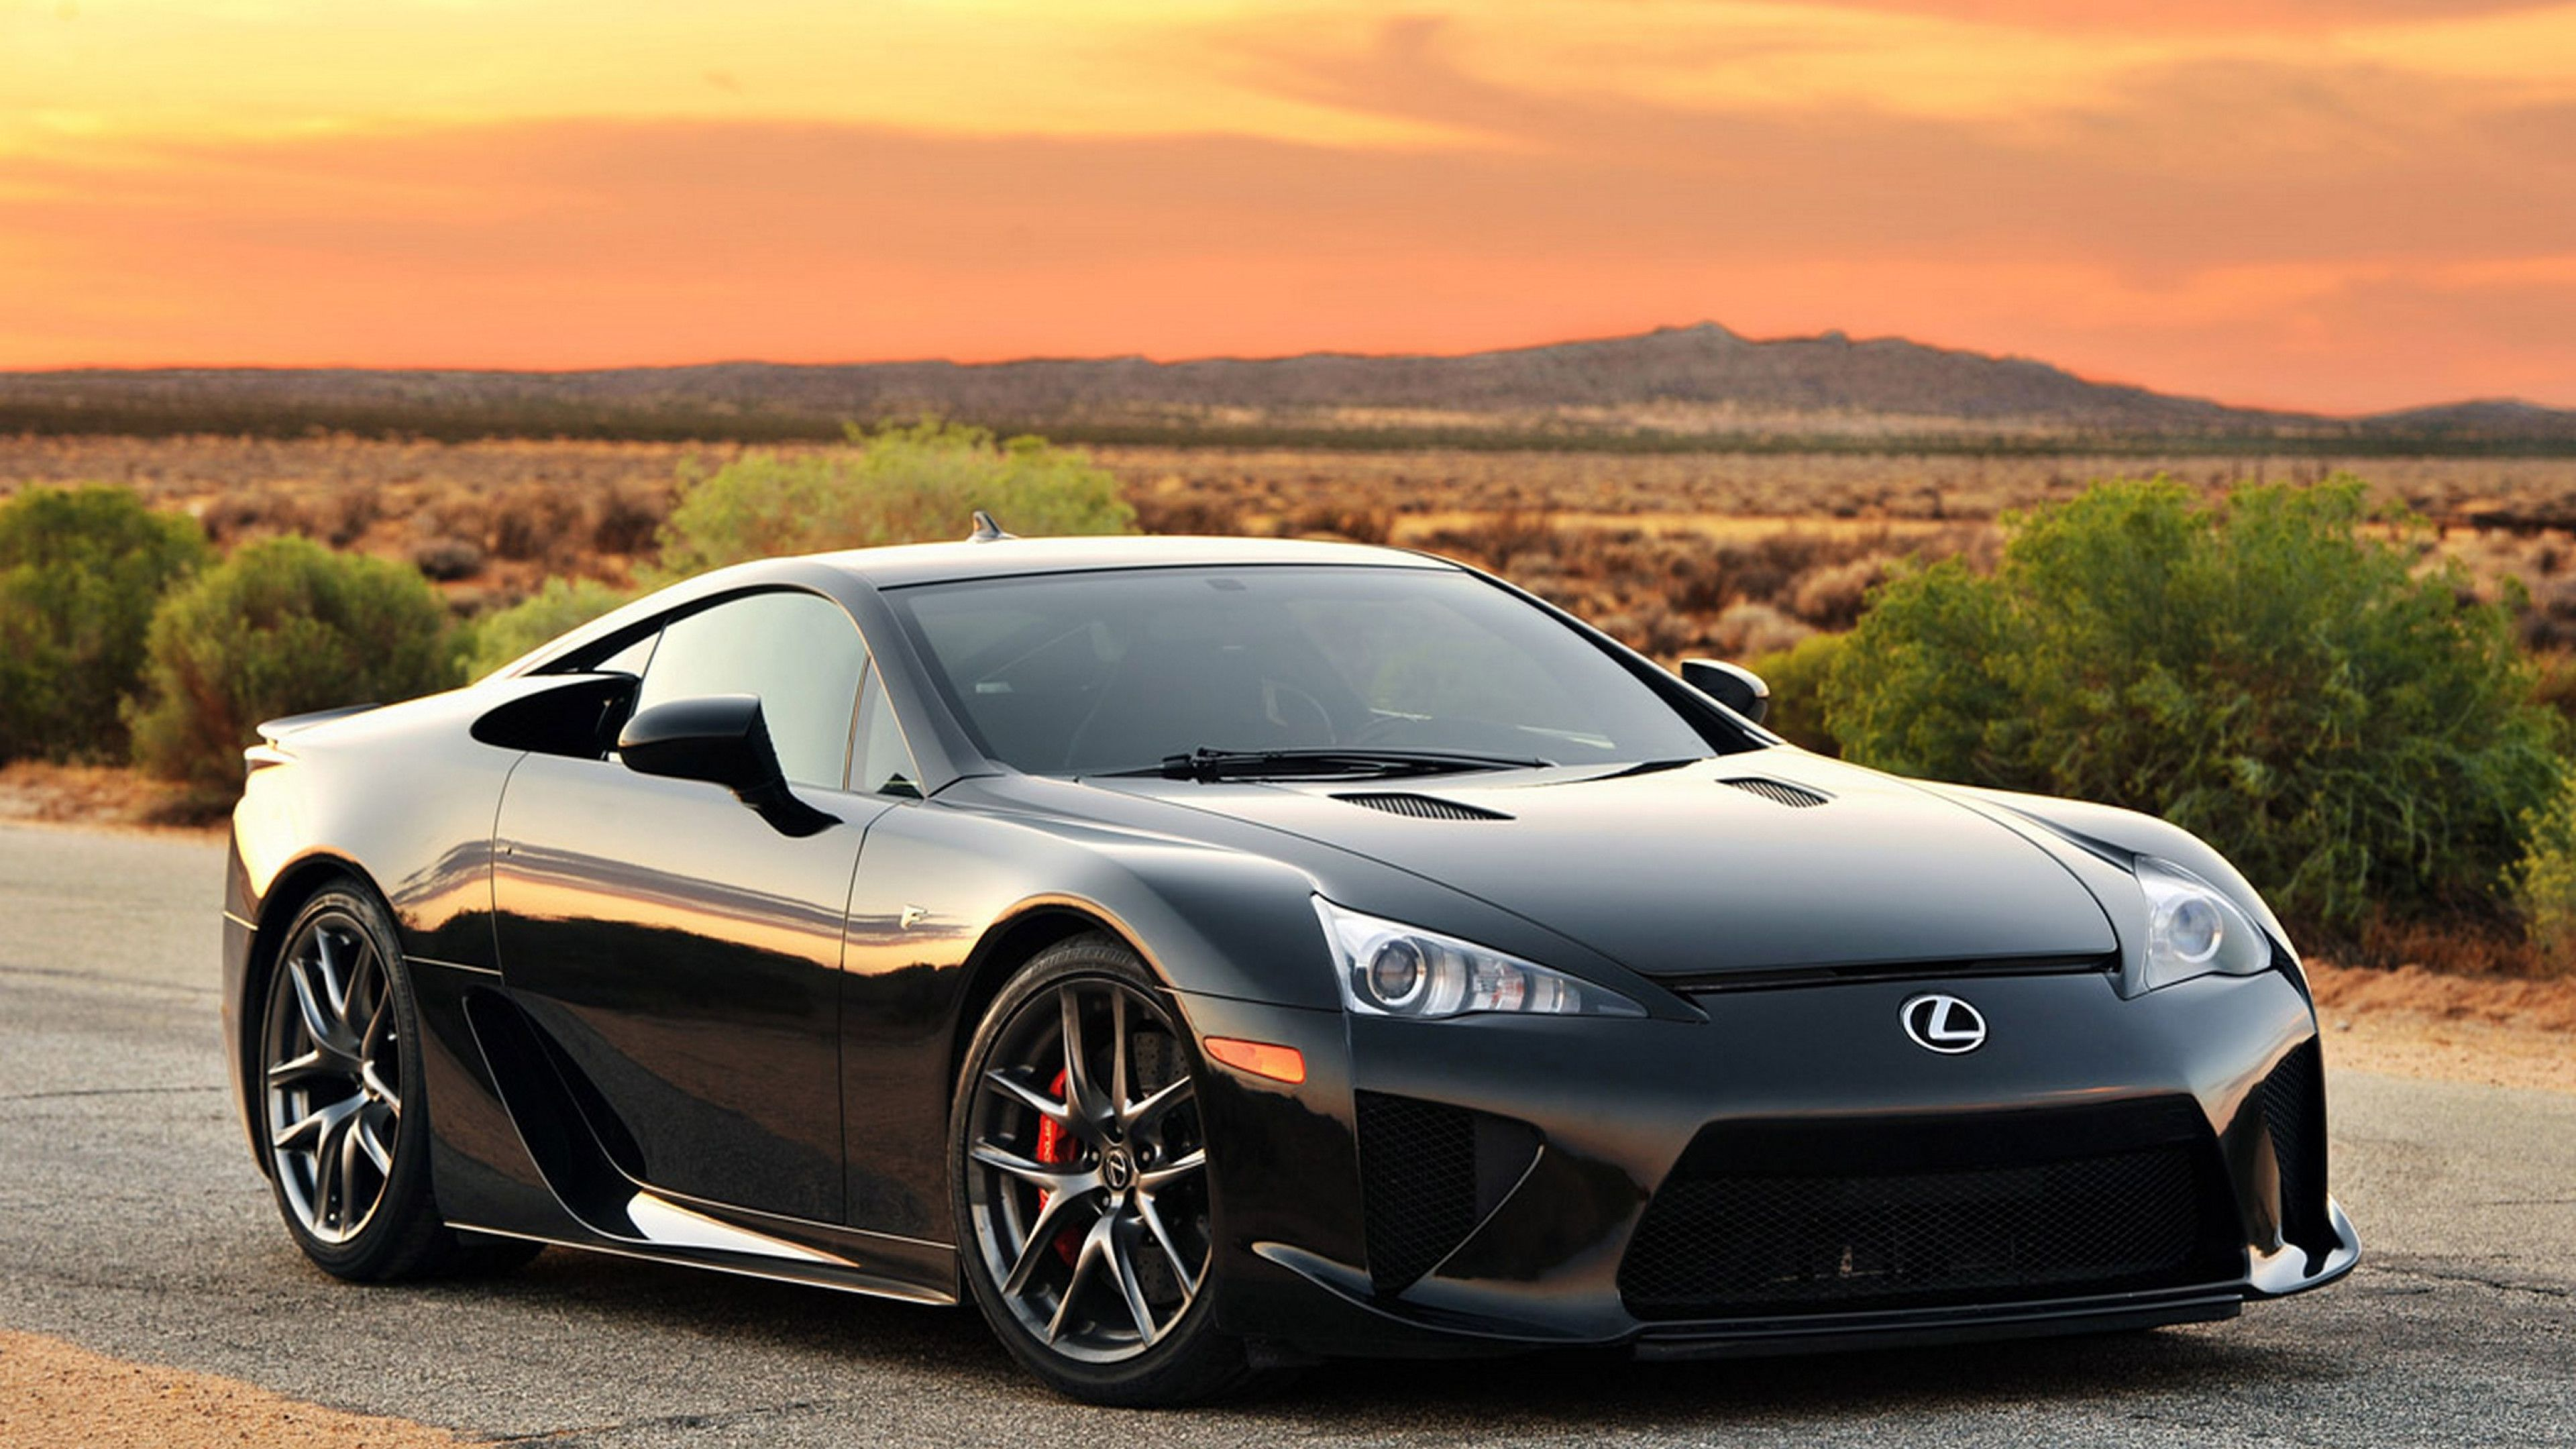 Lexus lfa photo - 4